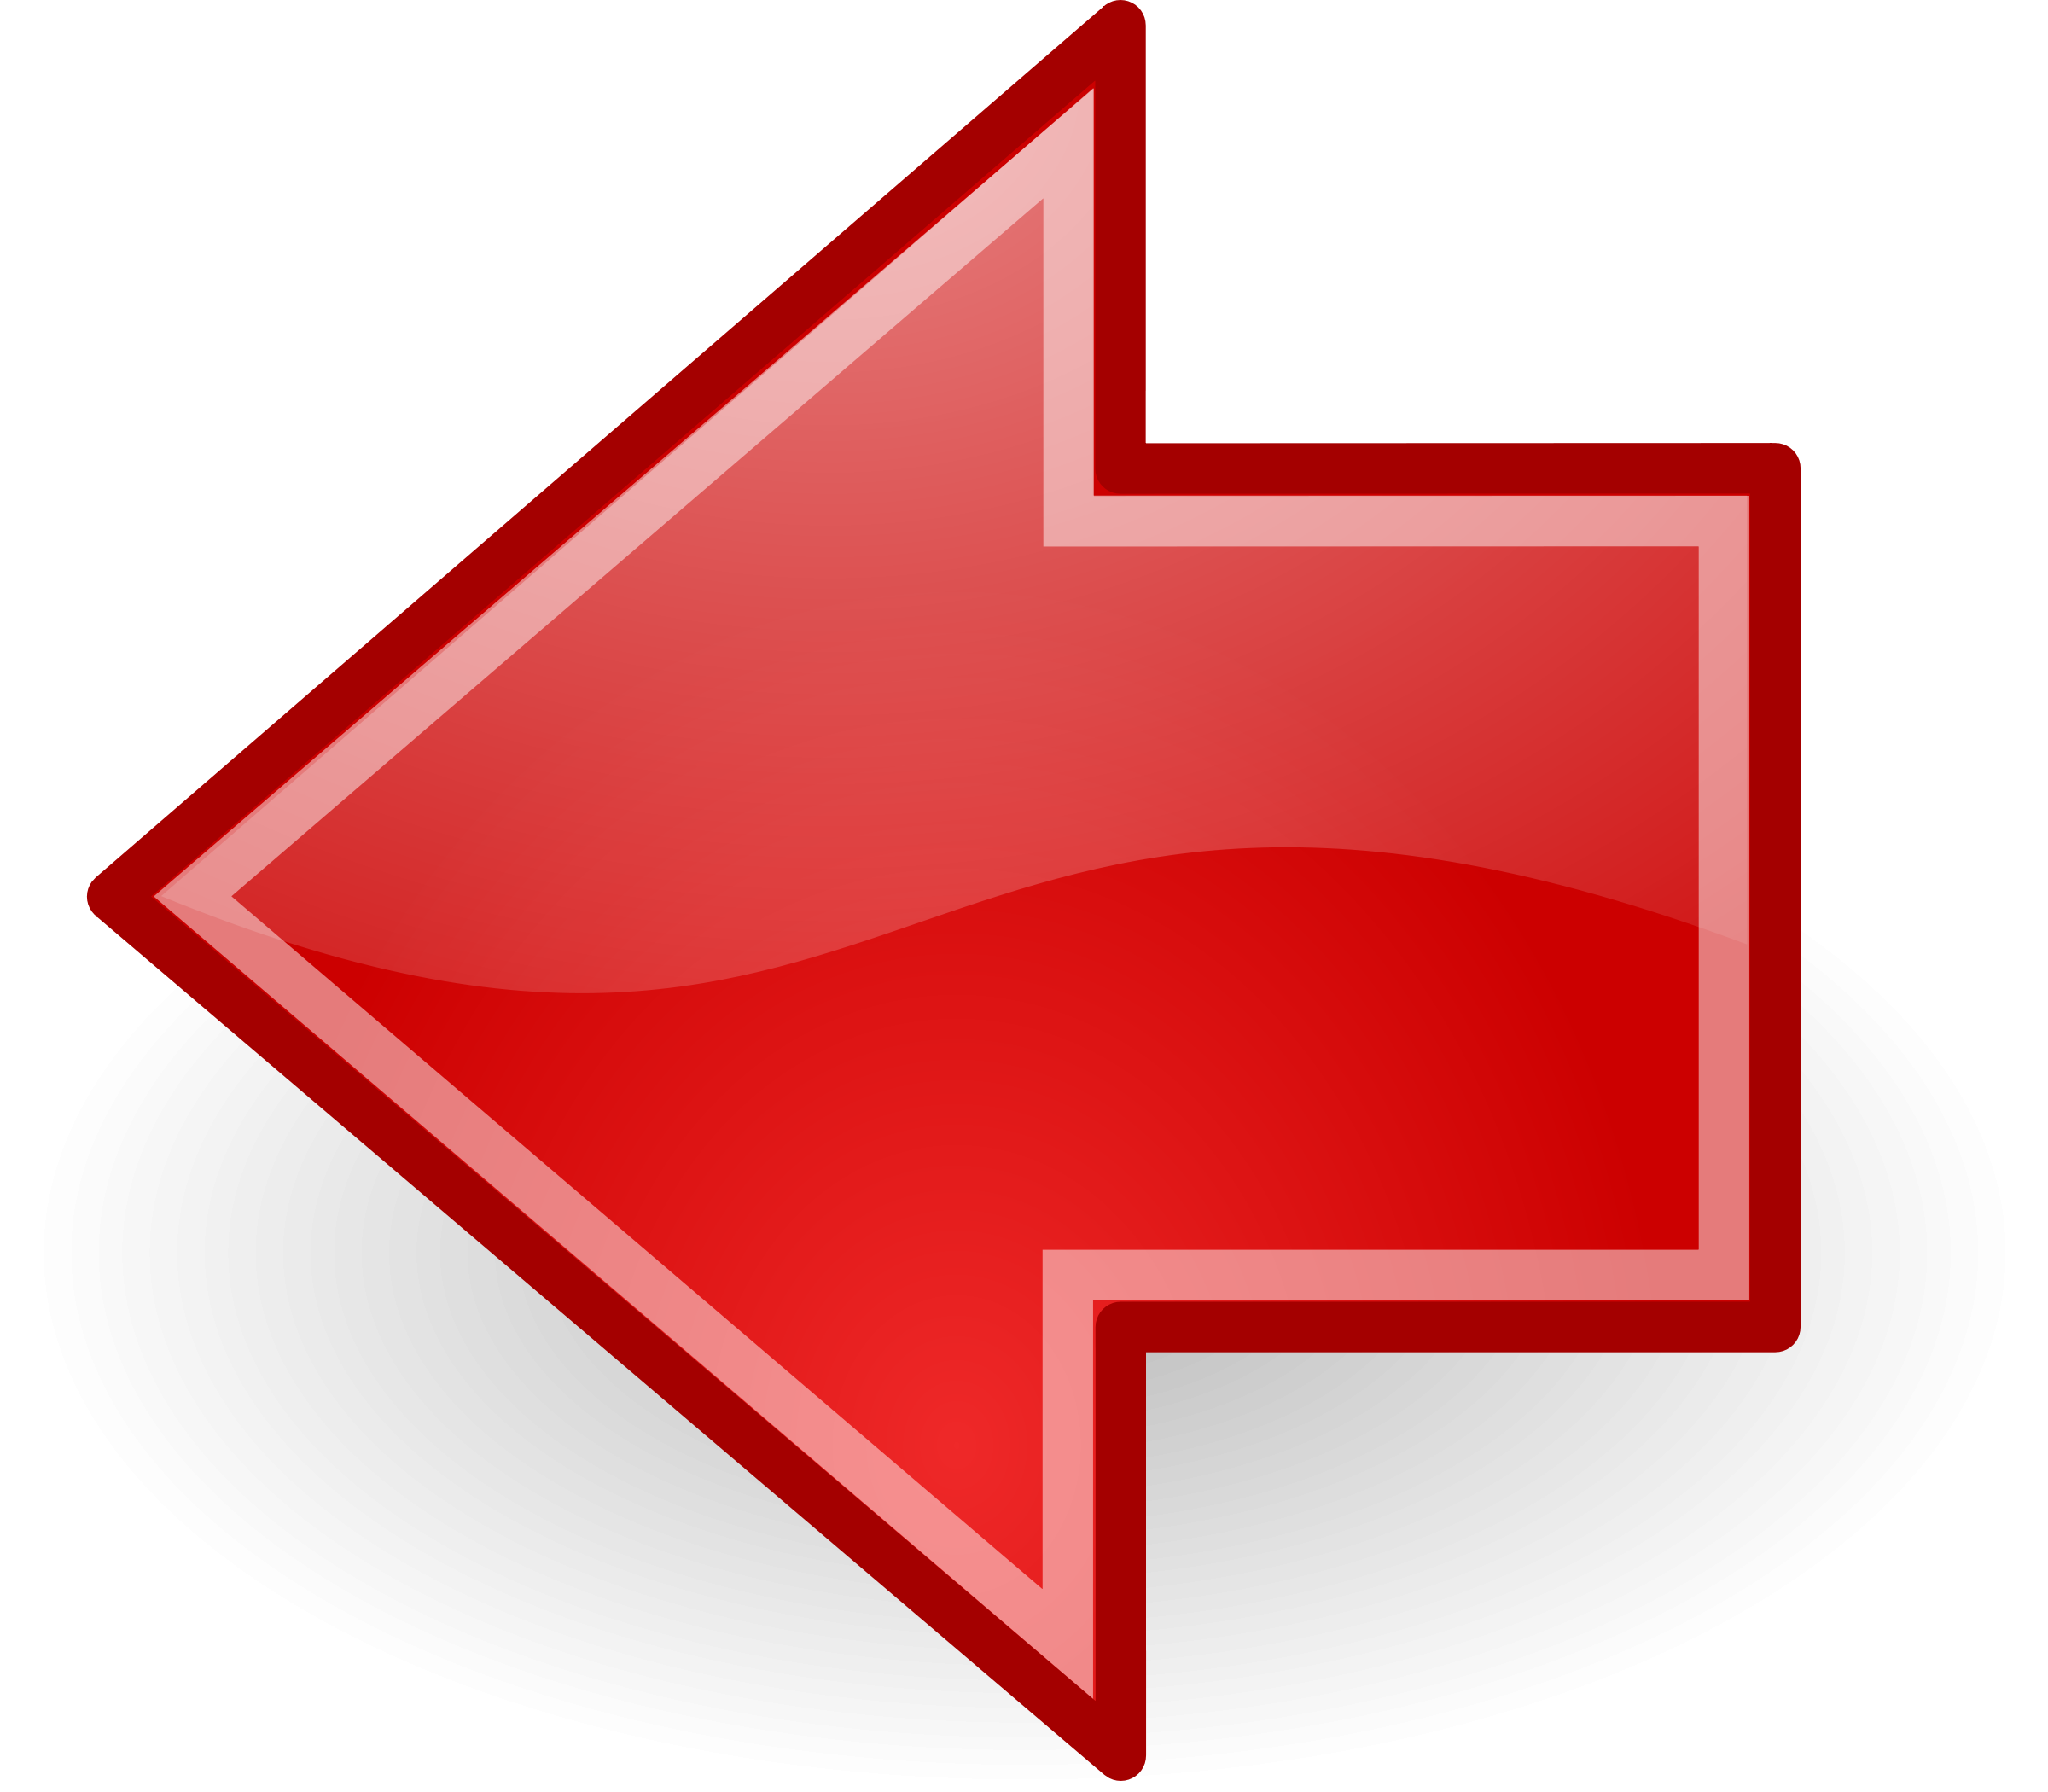 Image left craft wiki. Red right arrow png clipart royalty free